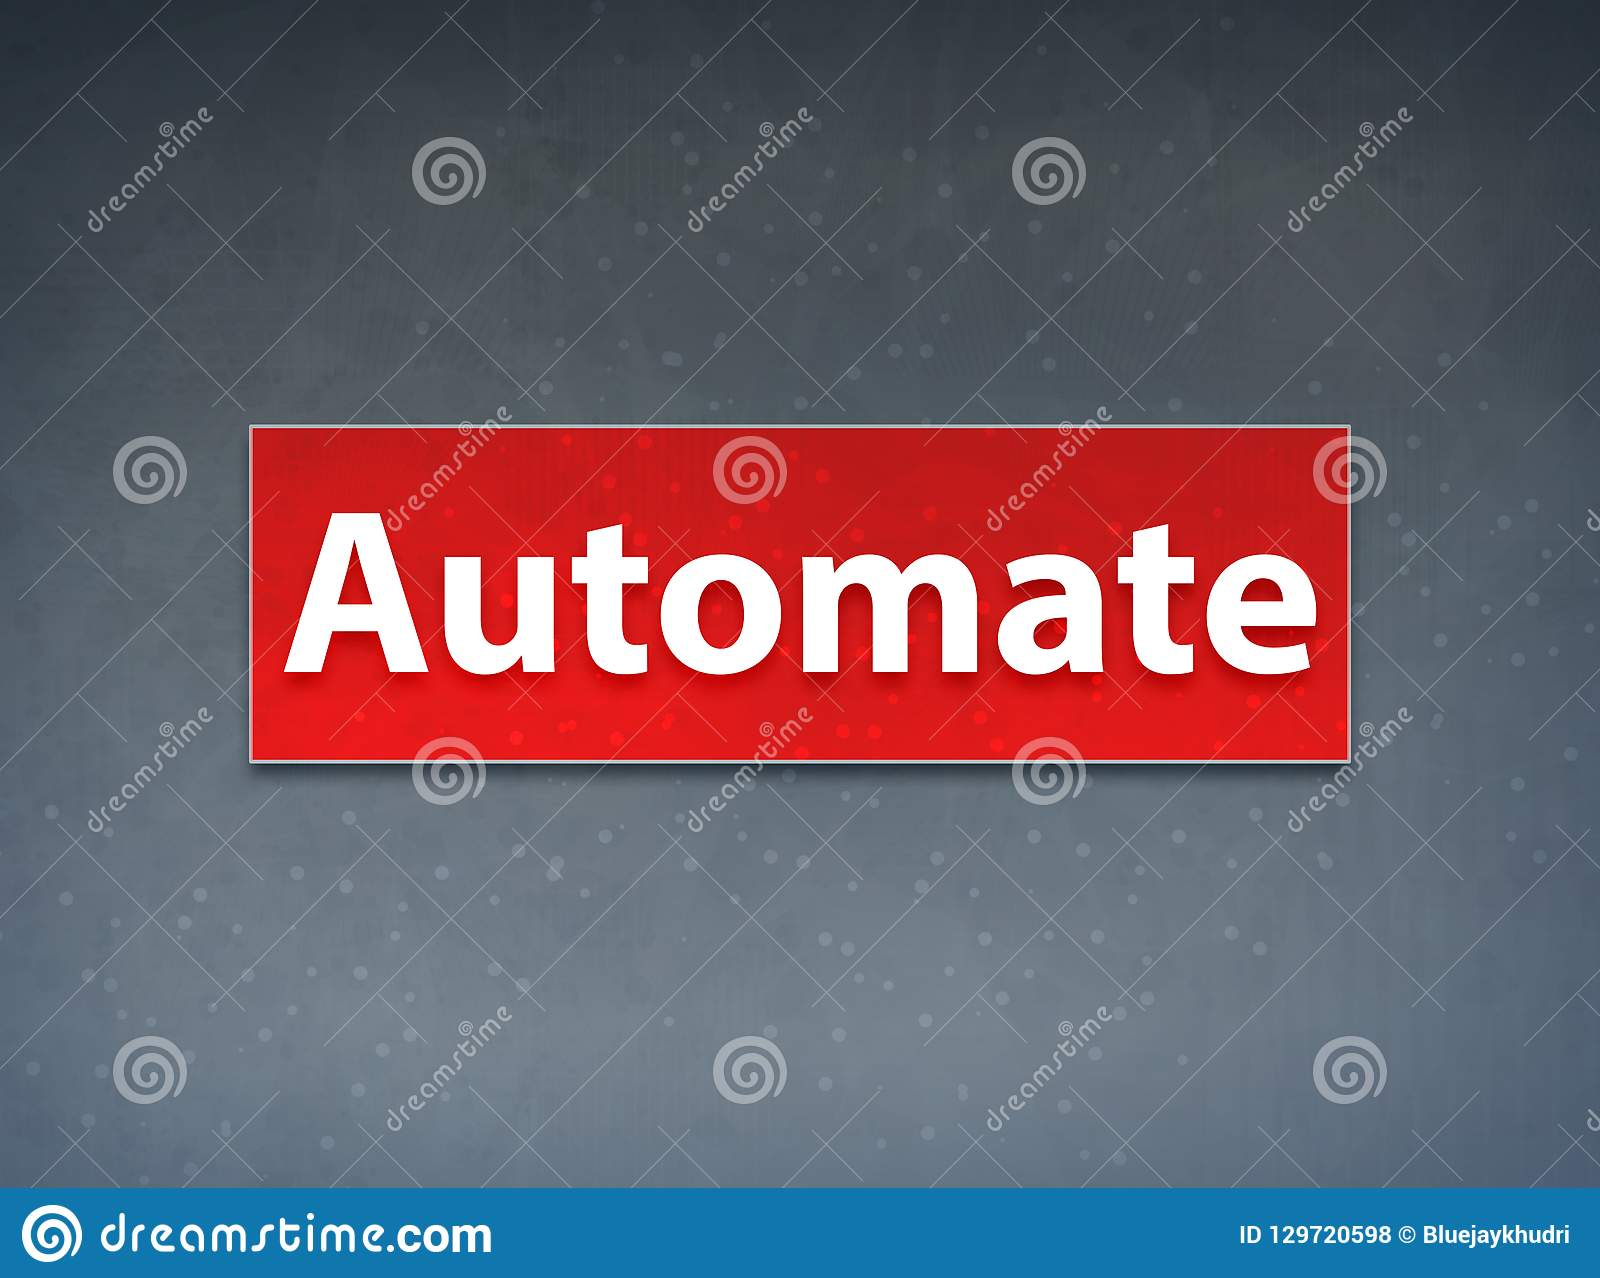 Automate Red Banner Abstract Background